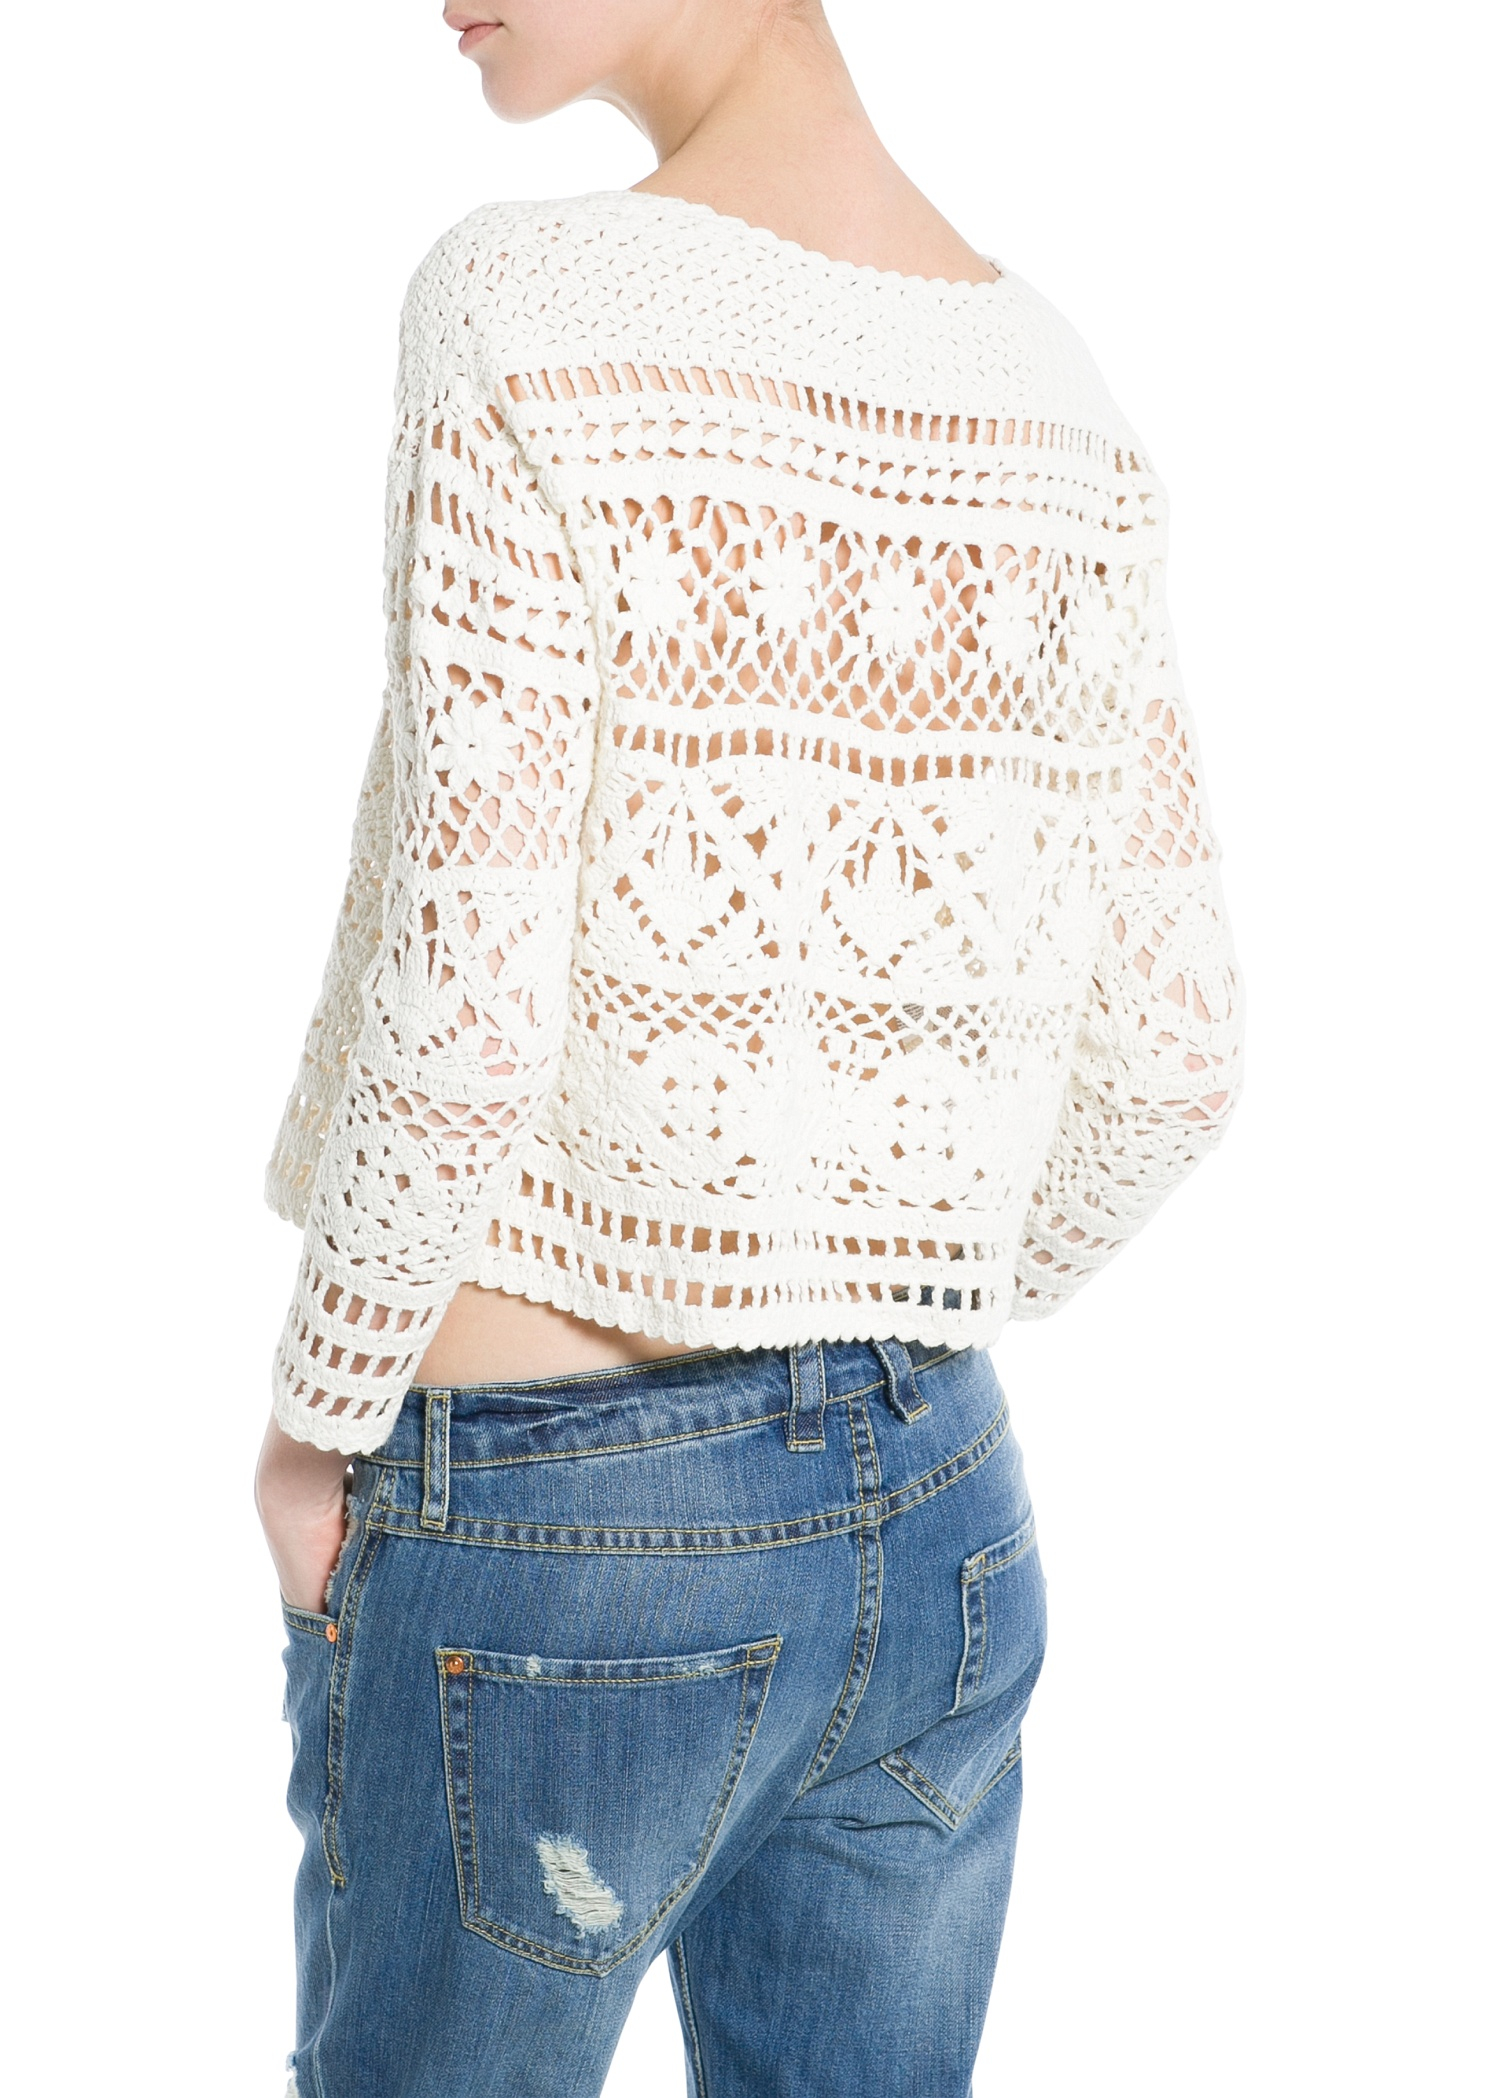 Mango Crochet Cropped Sweater in White | Lyst